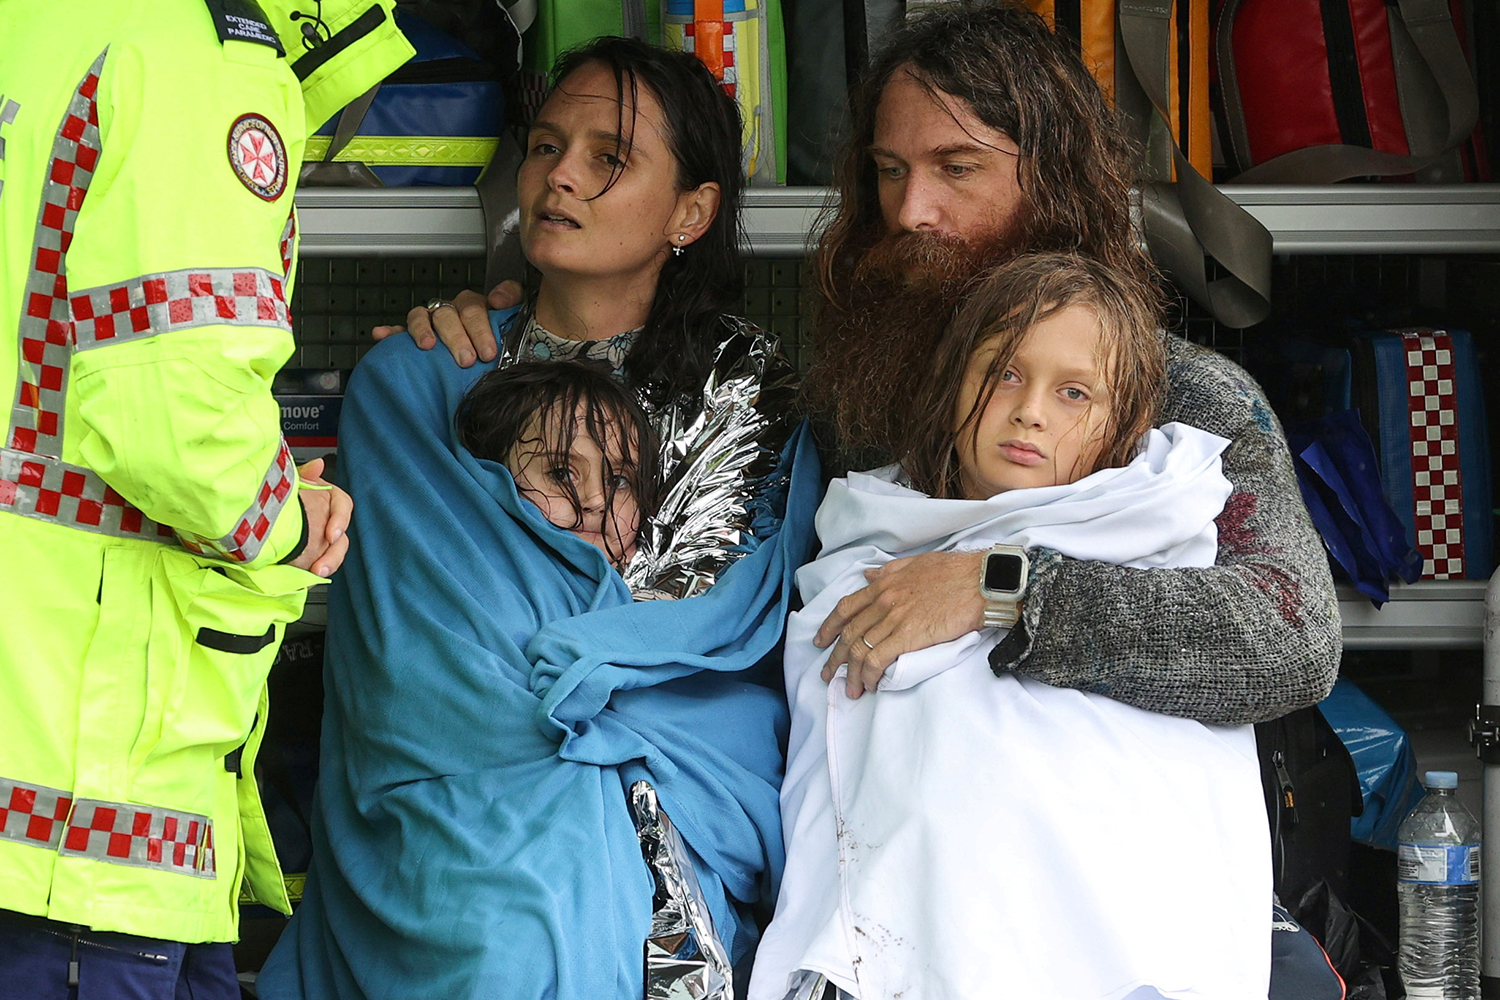 A family receives medical attention after the rescue boat that saved them from rising floodwaters capsized in Sydney on March 23. Loren Elliott/REUTERS